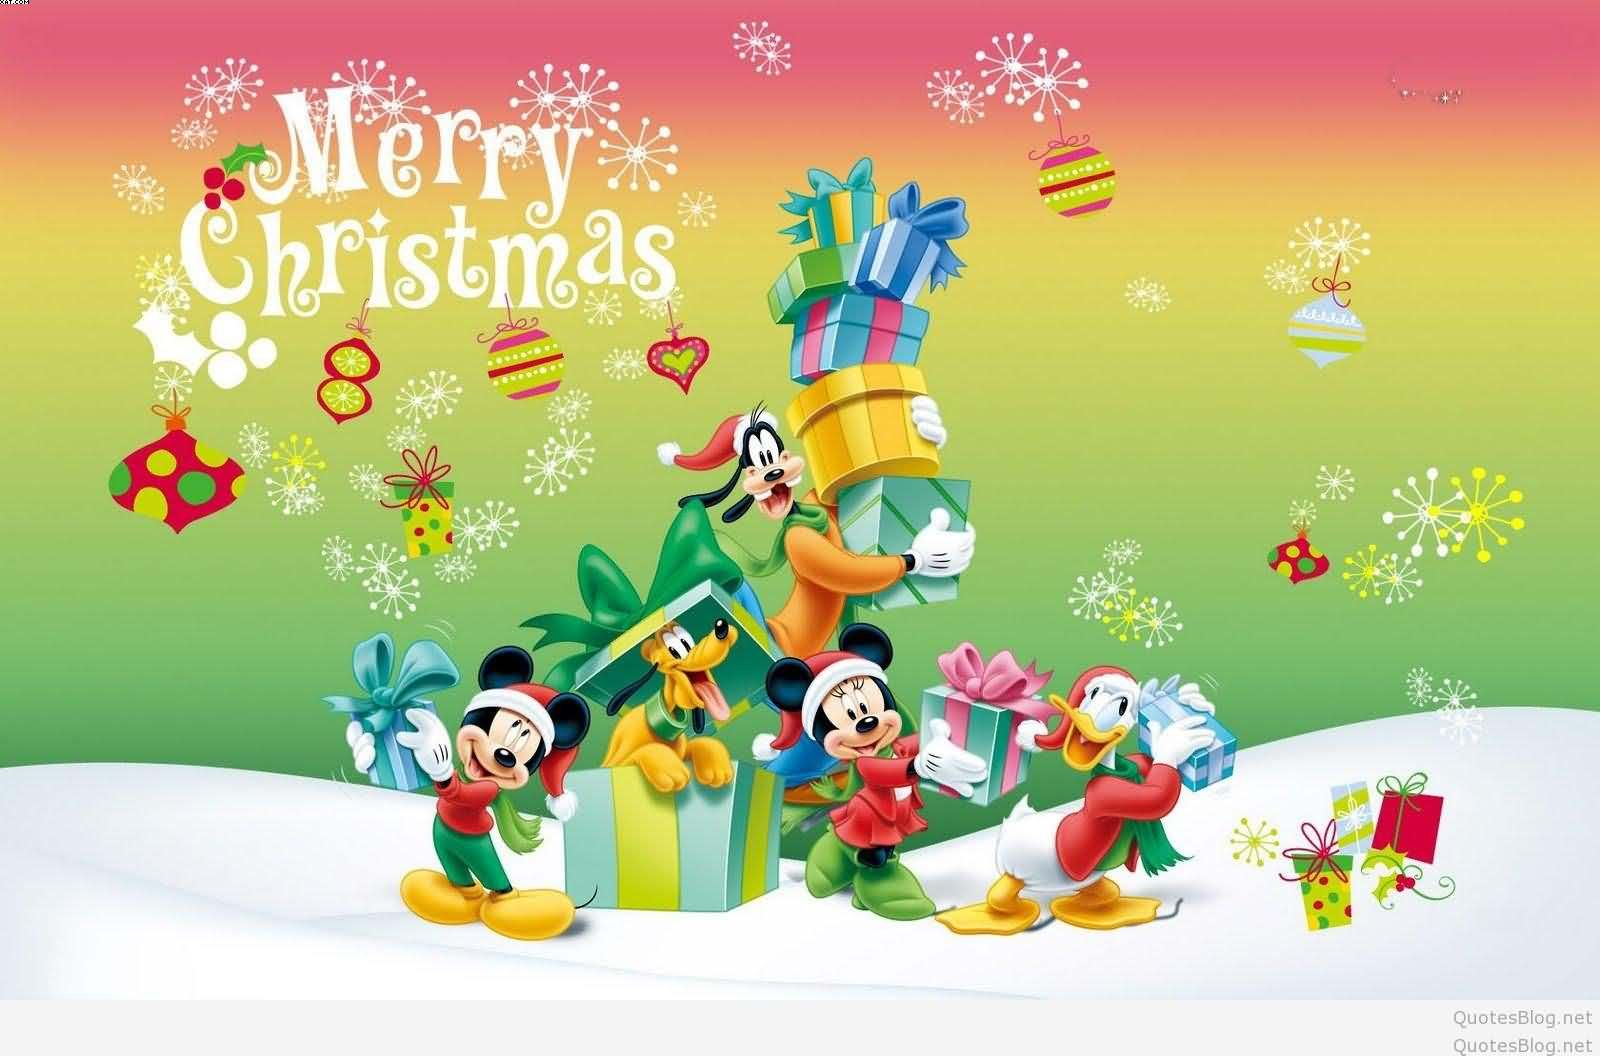 Cute Merry Christmas wishes from disney wallpaper